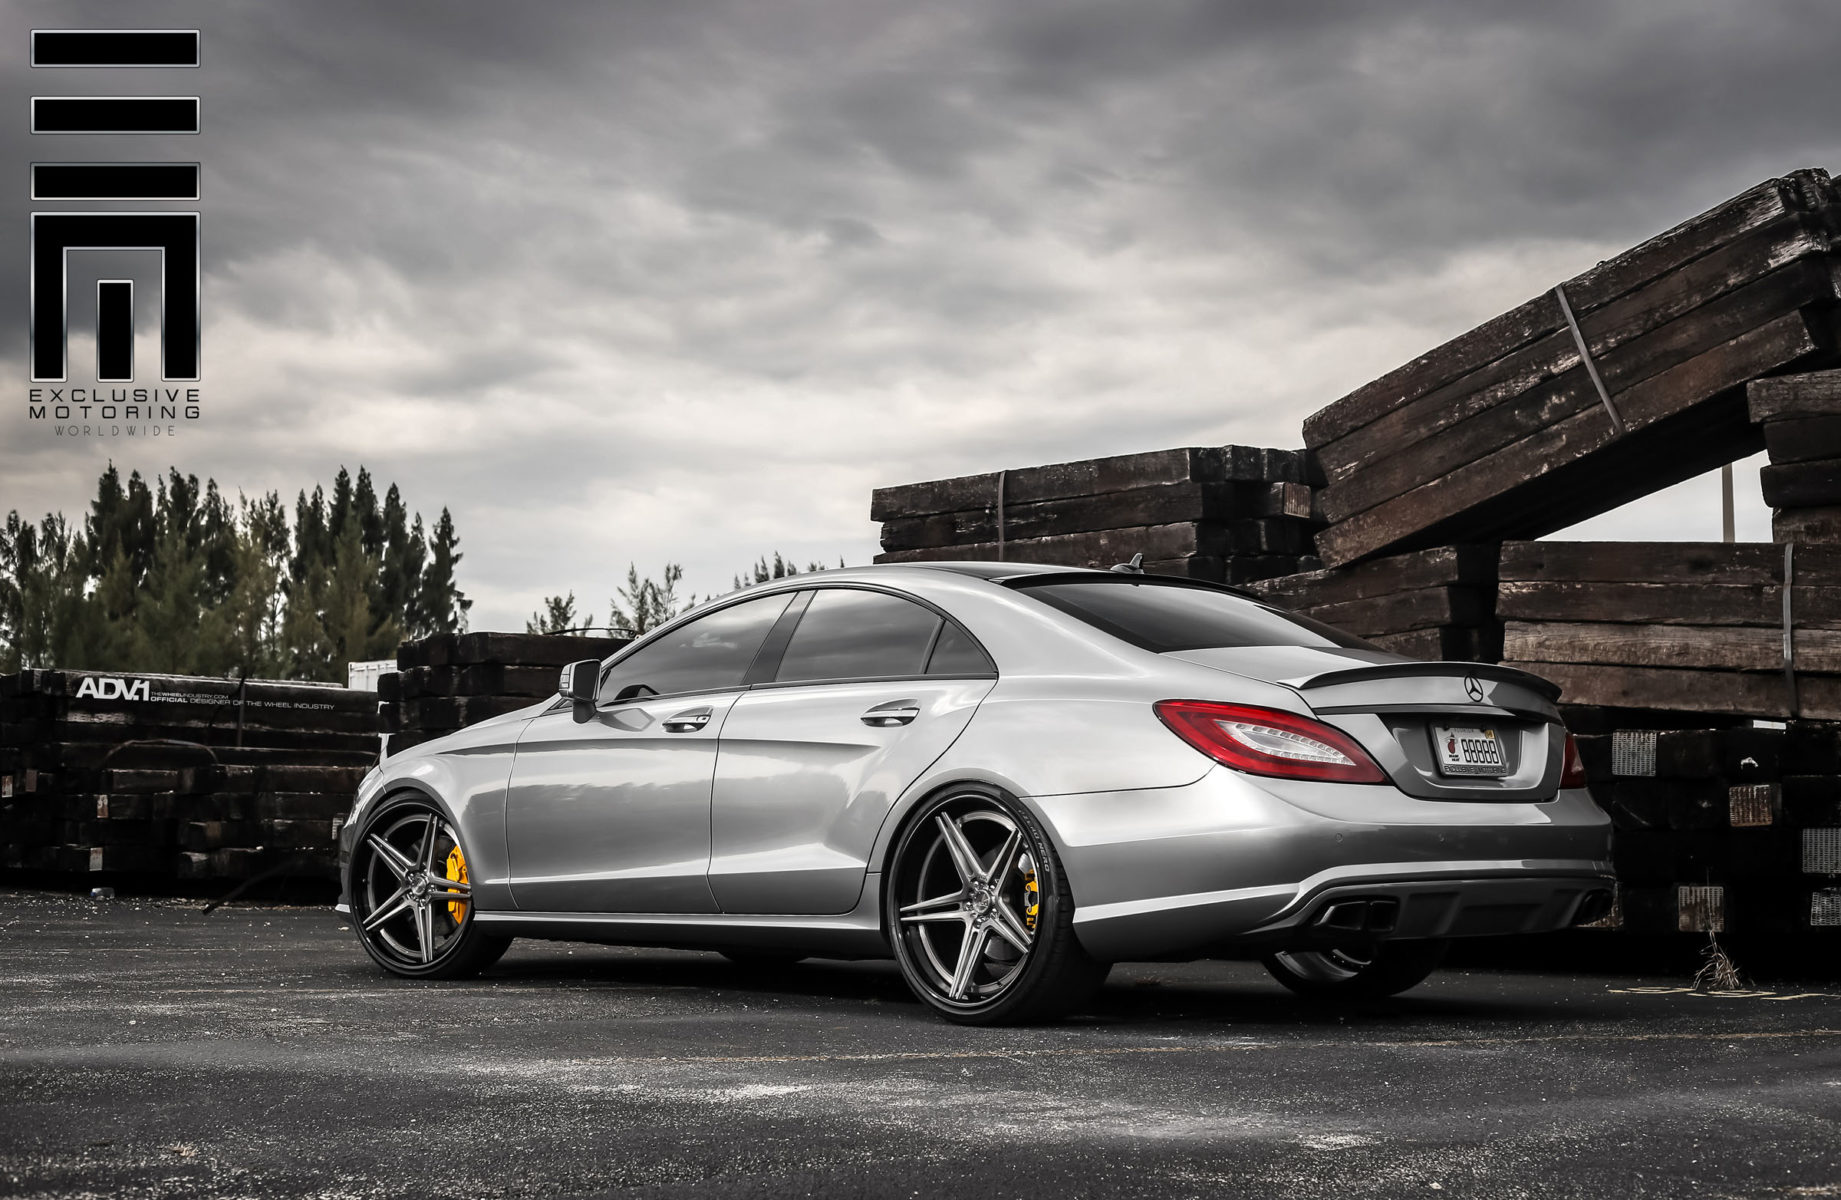 mercedes benz cls550 amg adv05 track spec sl wheels adv 1 wheels. Black Bedroom Furniture Sets. Home Design Ideas